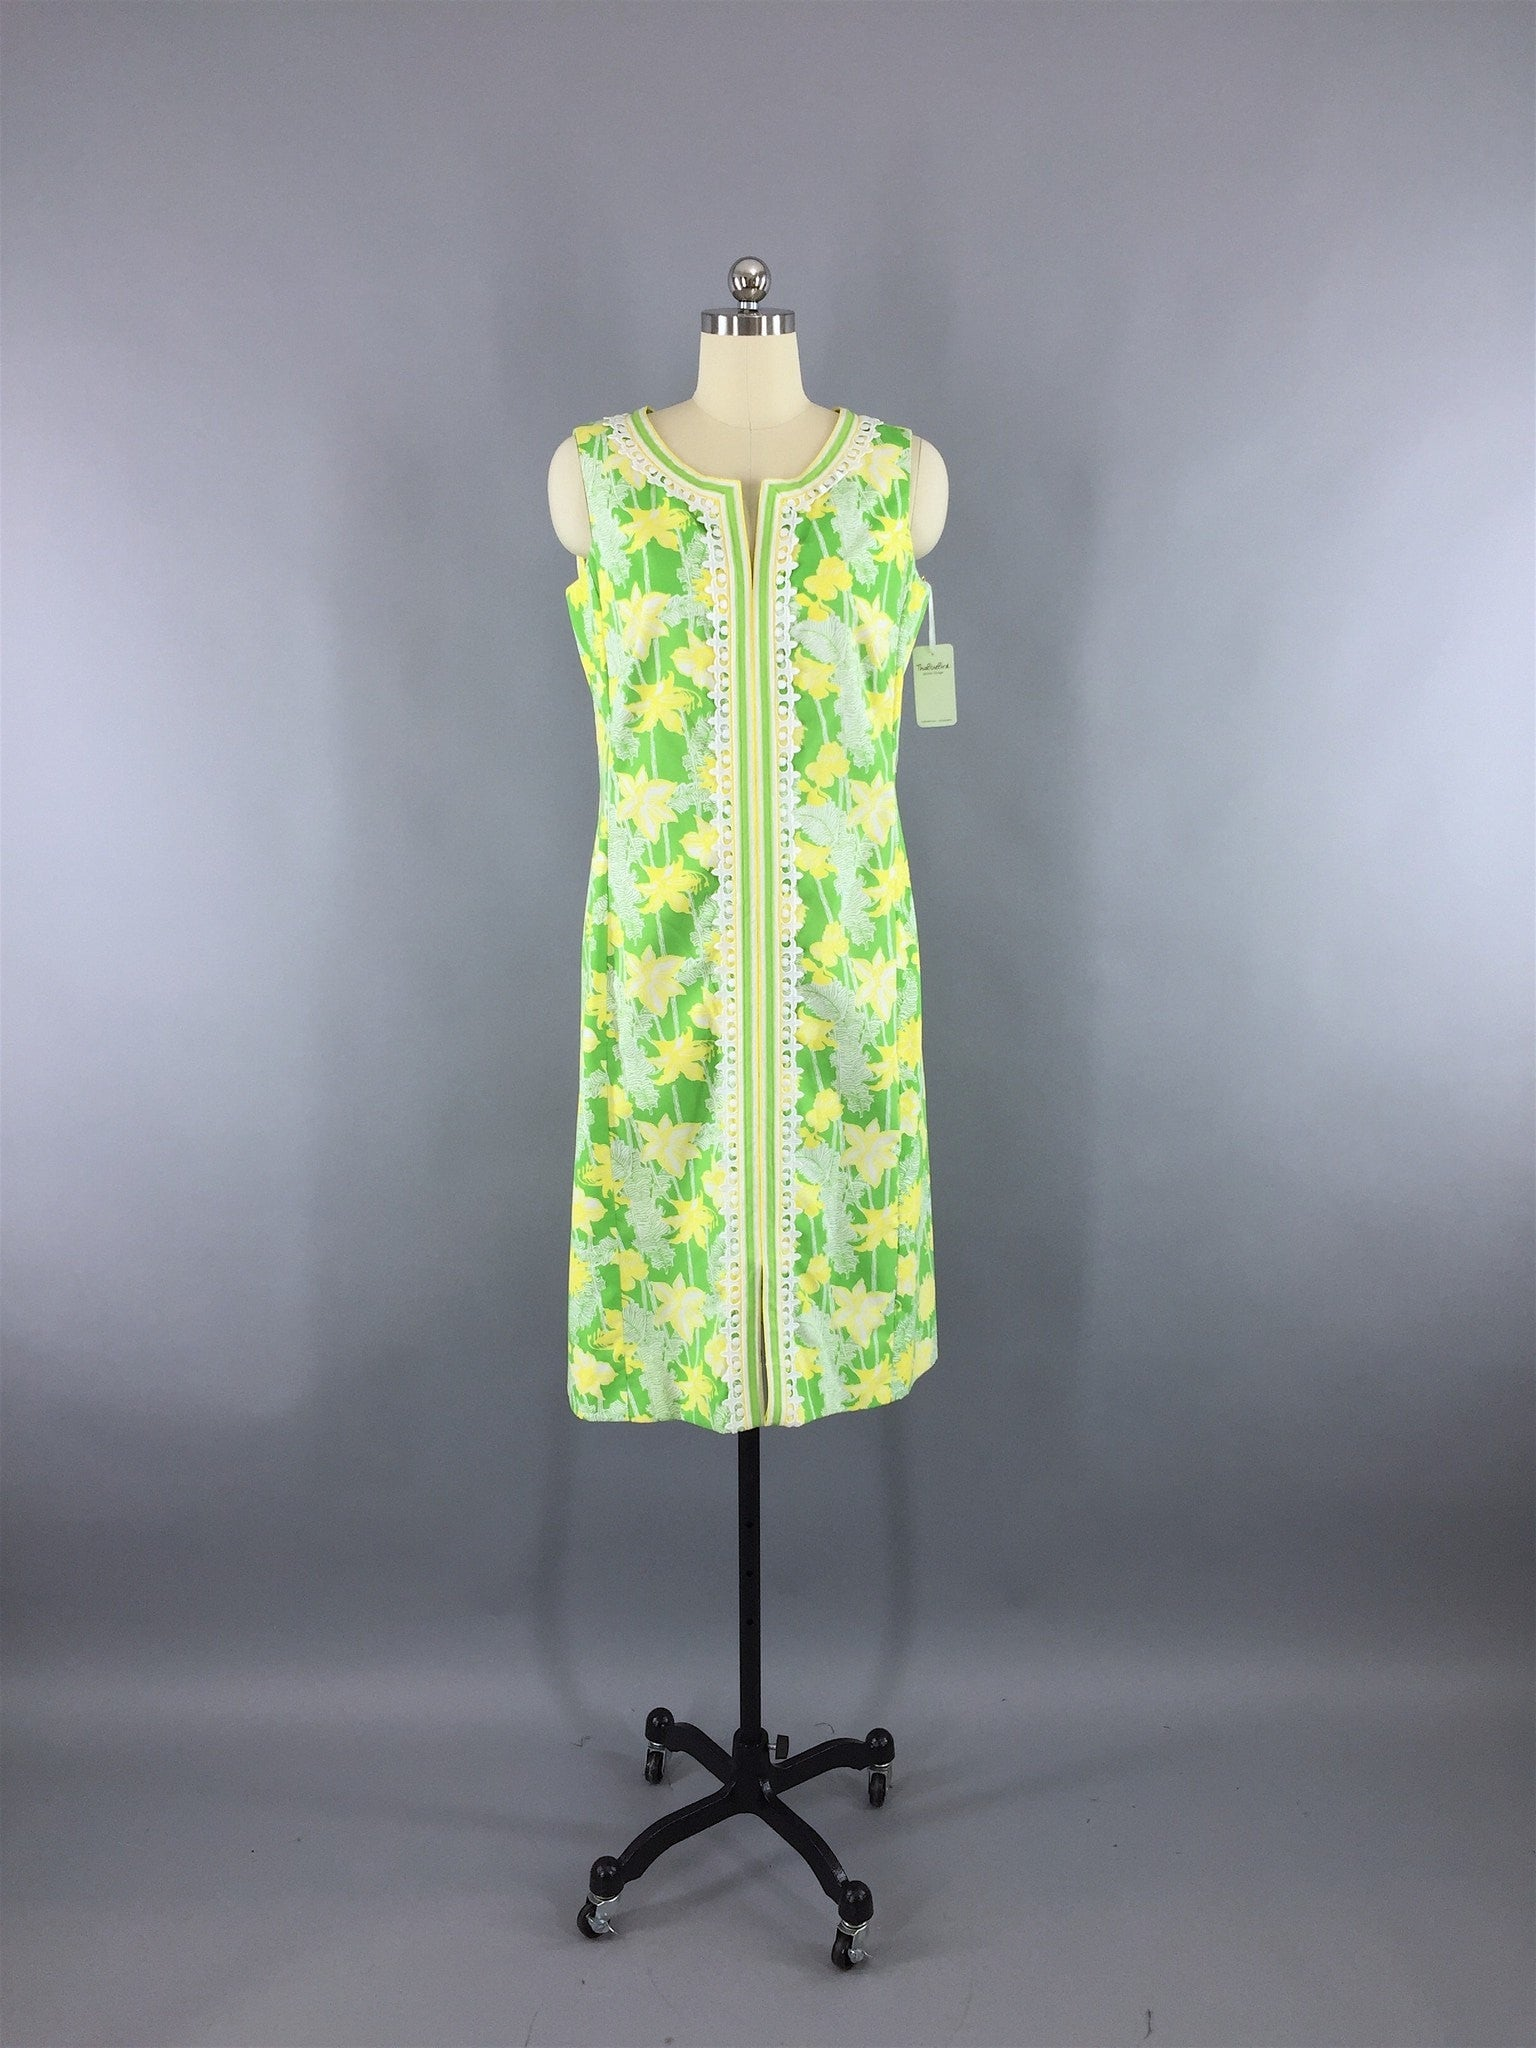 Vintage 1960s Lilly Pulitzer Dress / Green Yellow Floral Print Dress ThisBlueBird